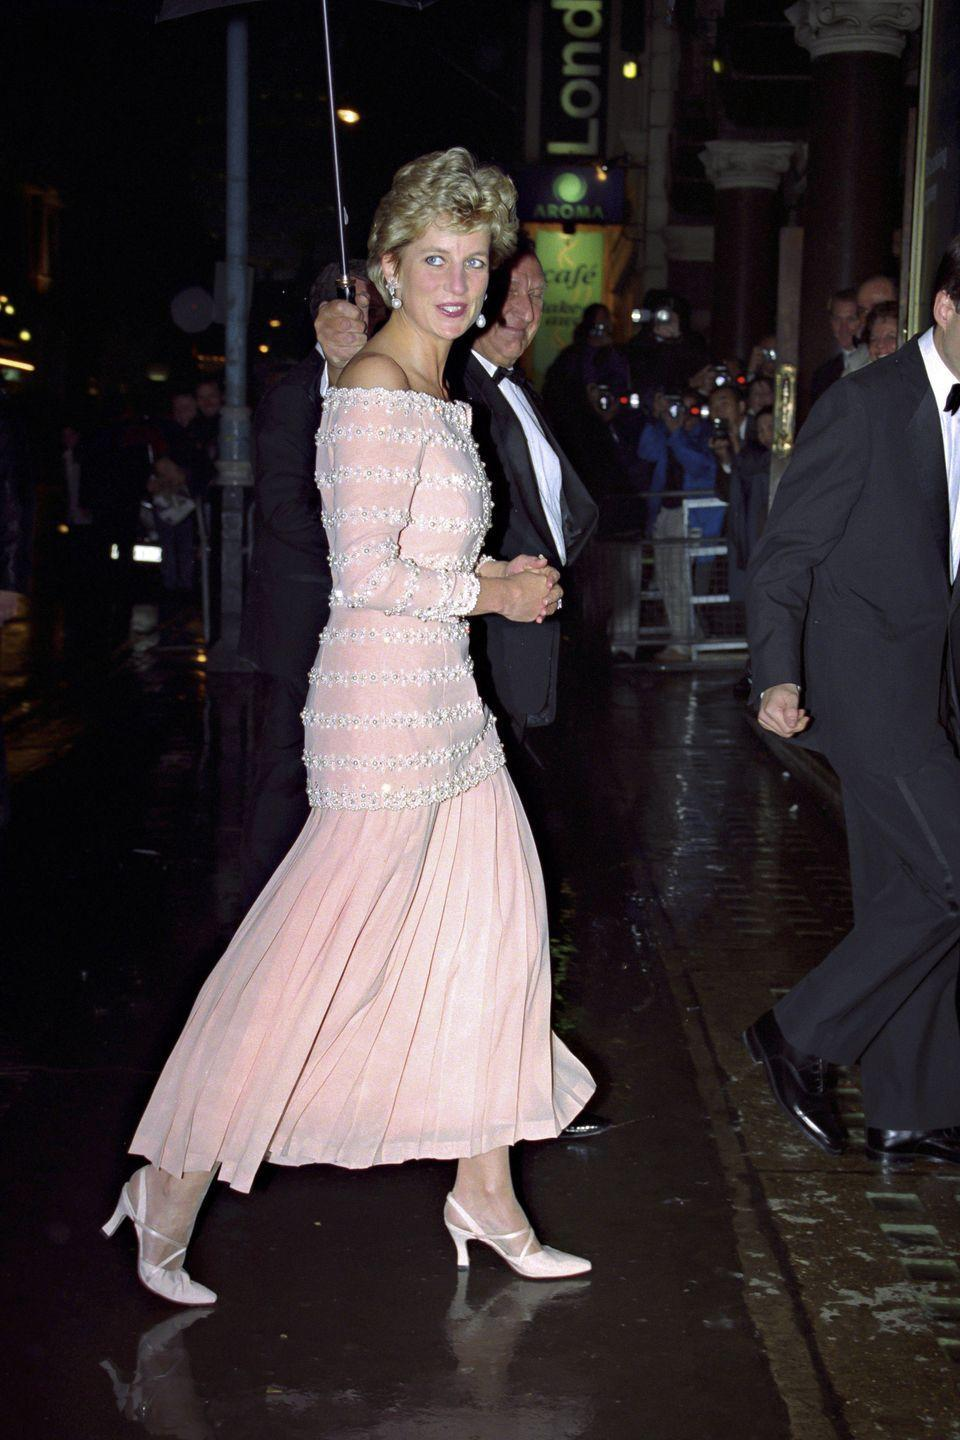 <p>In a pink off-the-shoulder dress and white heels at the London Coliseum. </p>